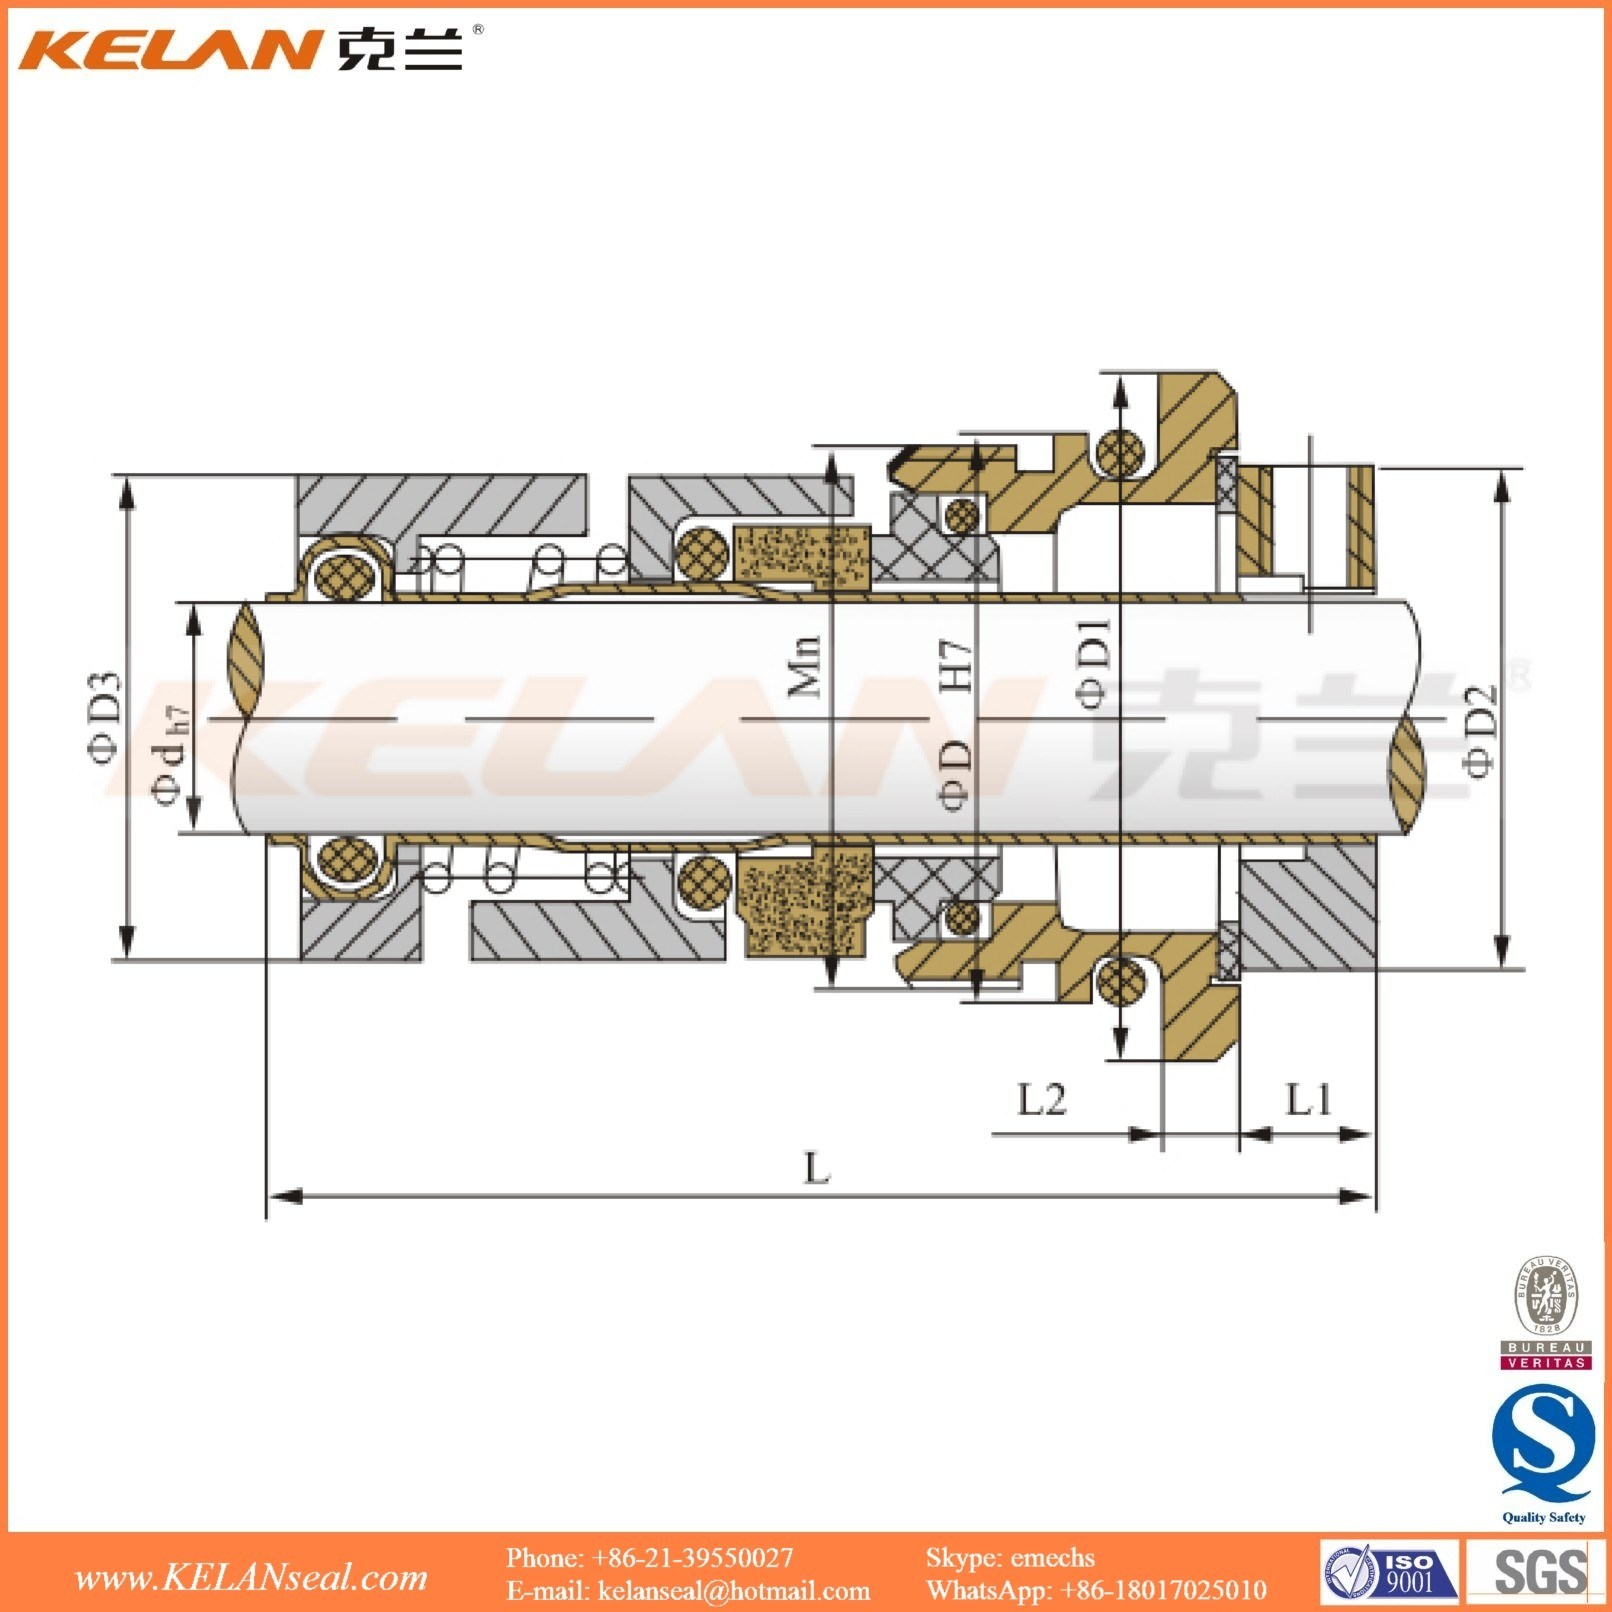 china lc type series for grundfos pump mechanical seal (kllc) photos triplex pump schematics lc type series for grundfos pump mechanical seal (kllc)